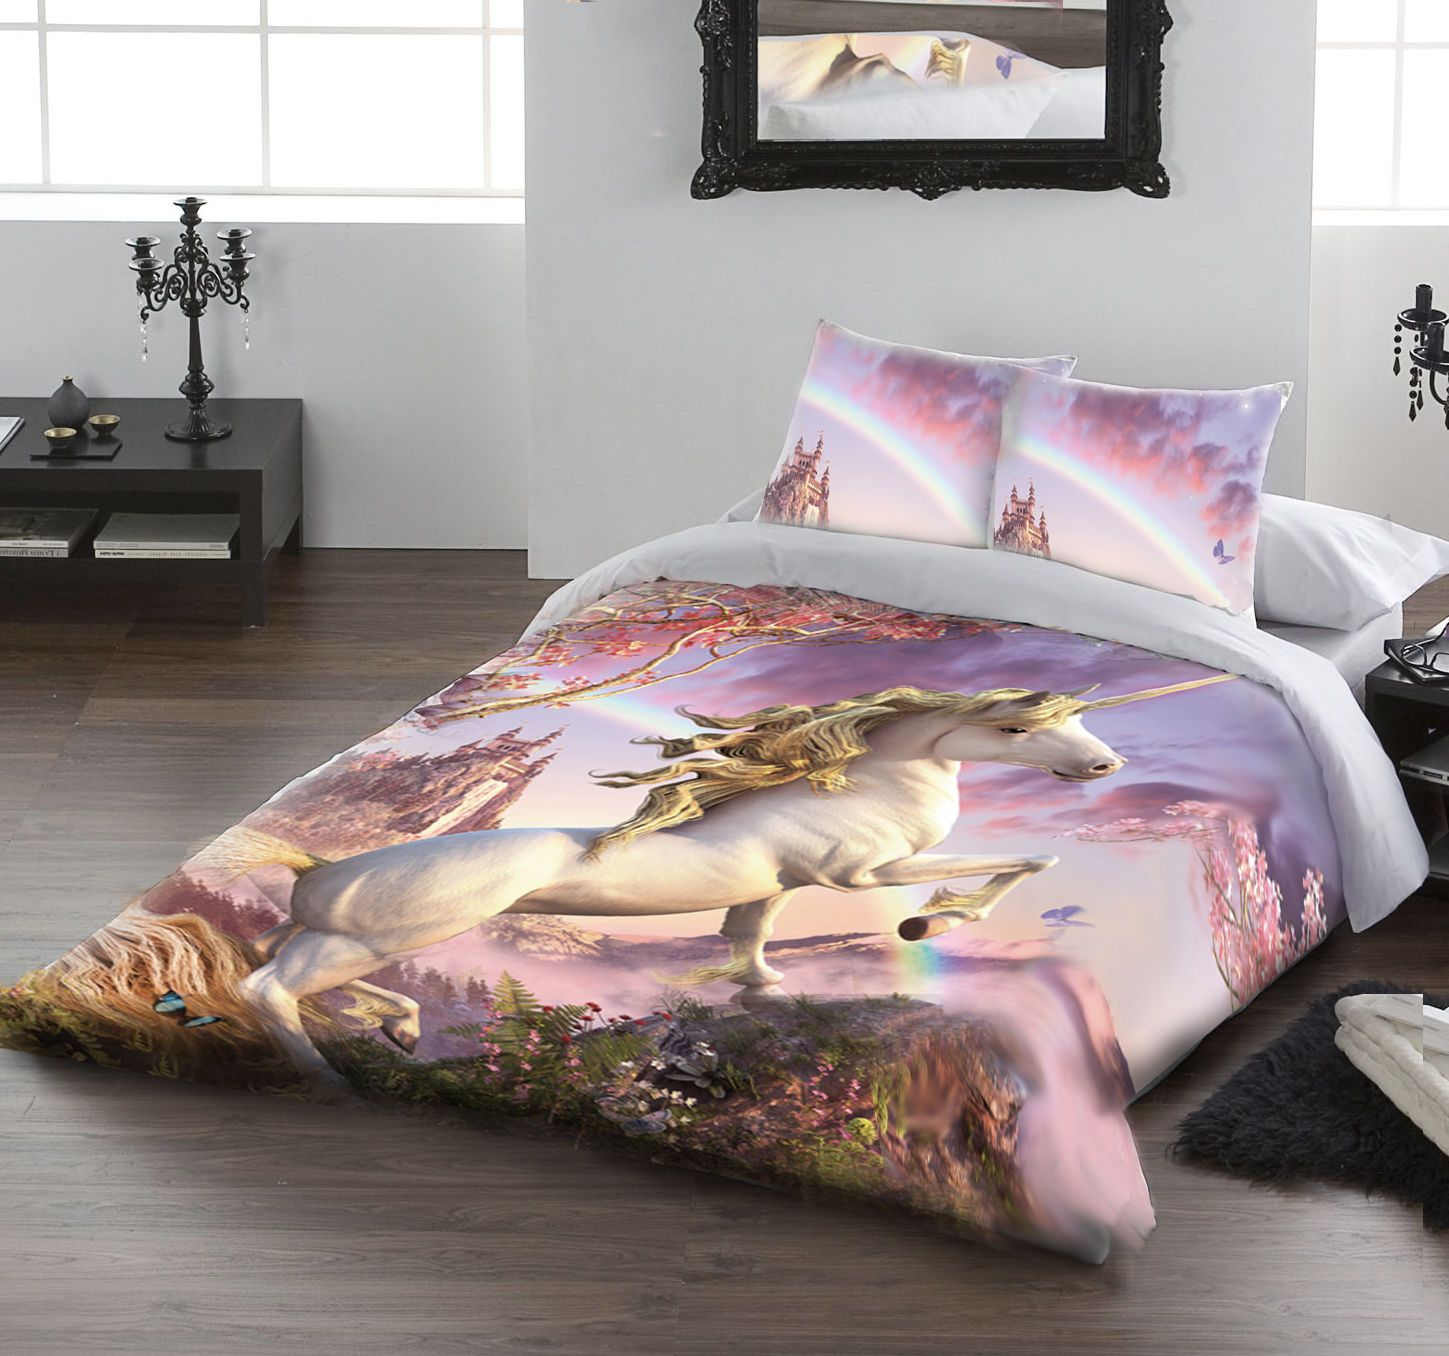 Awesome Unicorn Duvet Cover Set For Uk Double Us Twin Bed By David Penfound Ebay Bedding